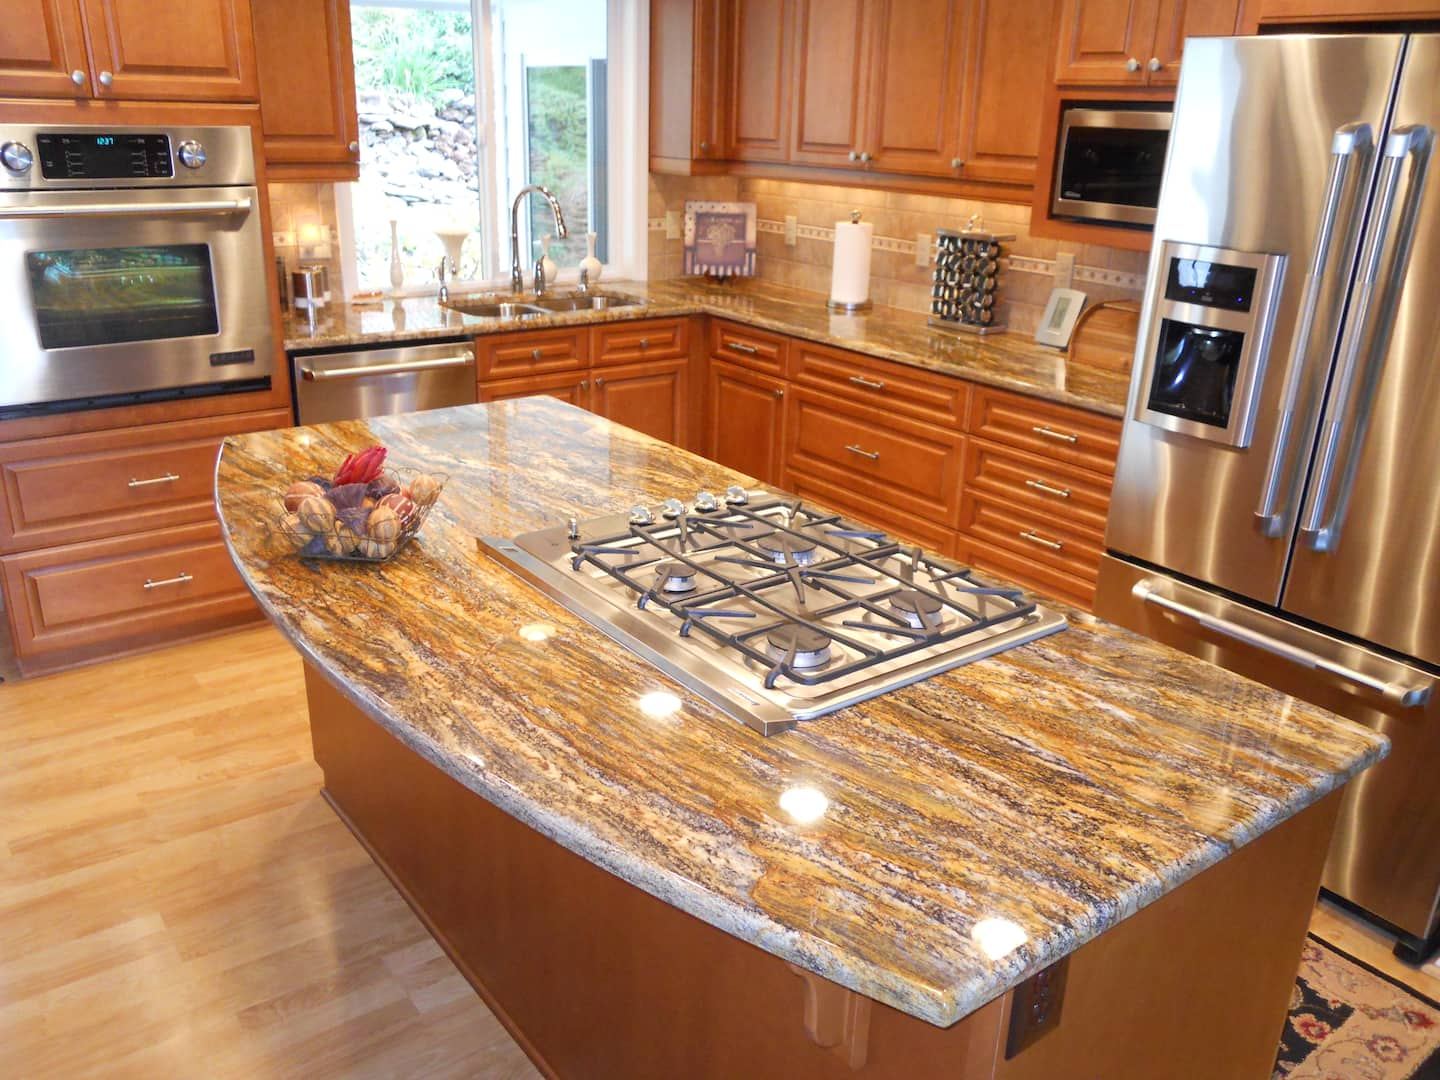 How Much Should A Kitchen Remodel Cost Angies List - How much does it cost to remodel a kitchen